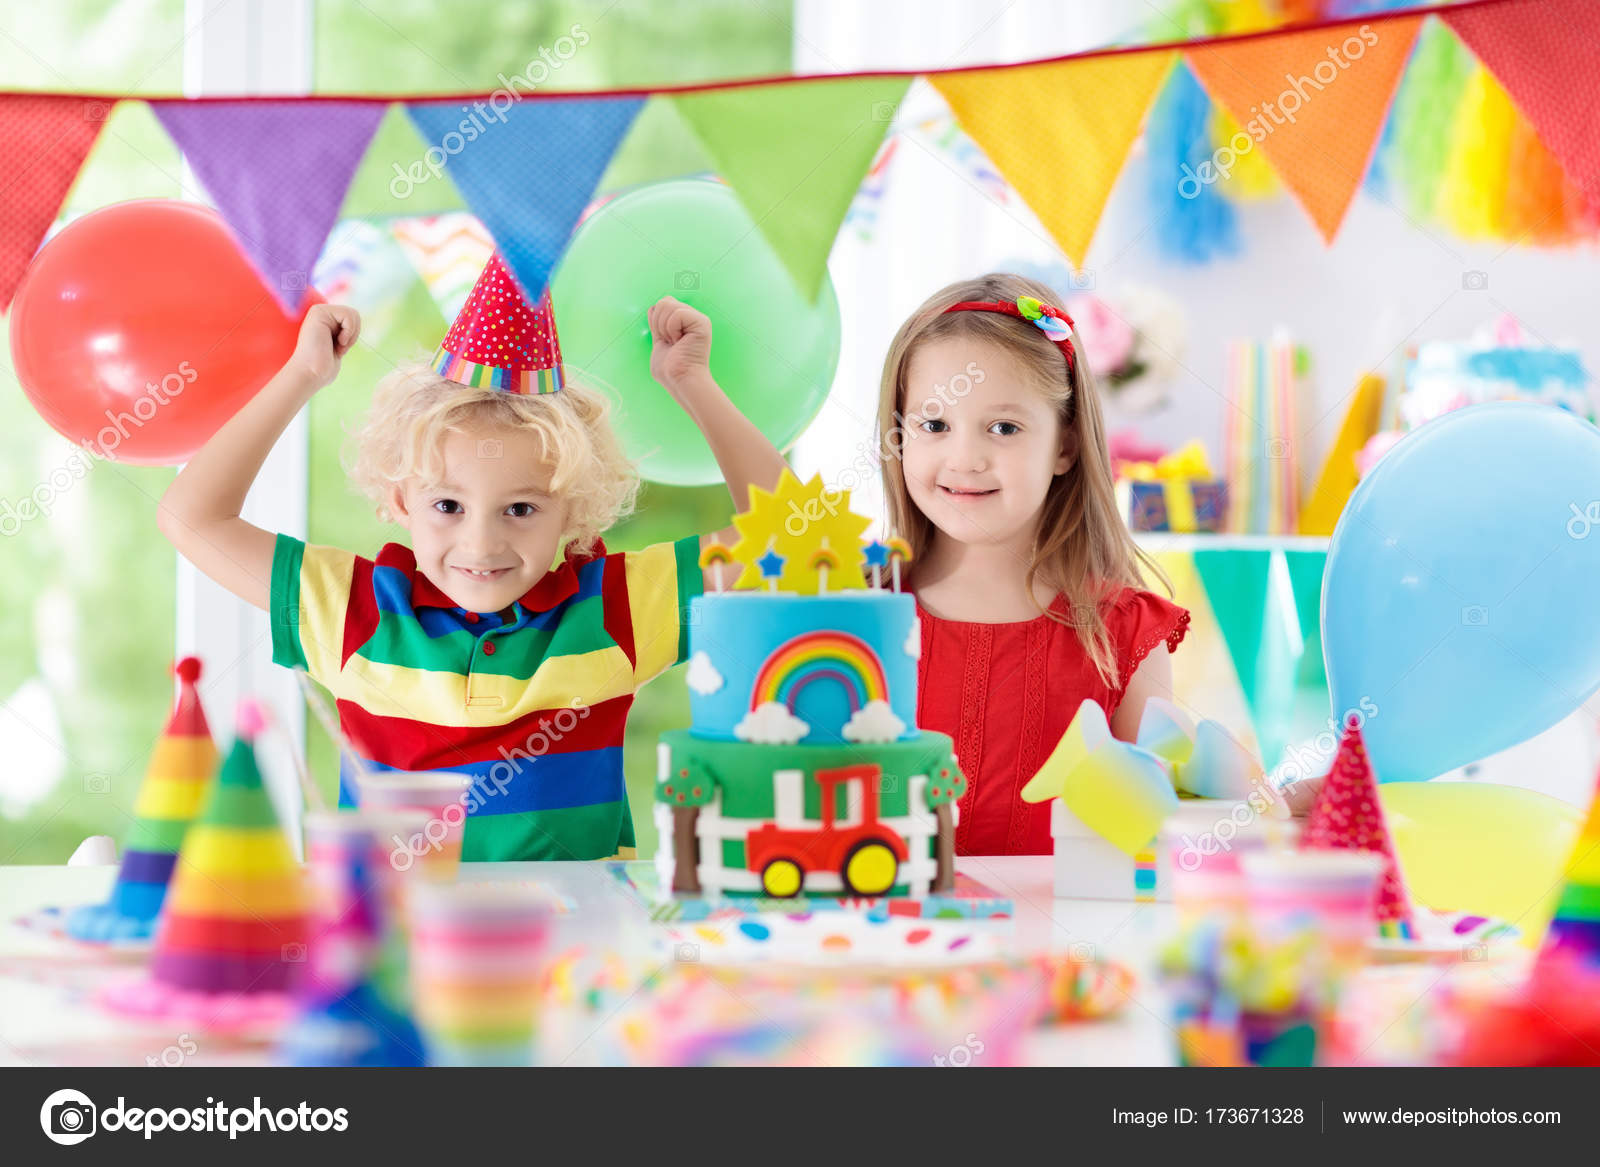 Kids Party Birthday Cake With Candles For Child Stock Photo